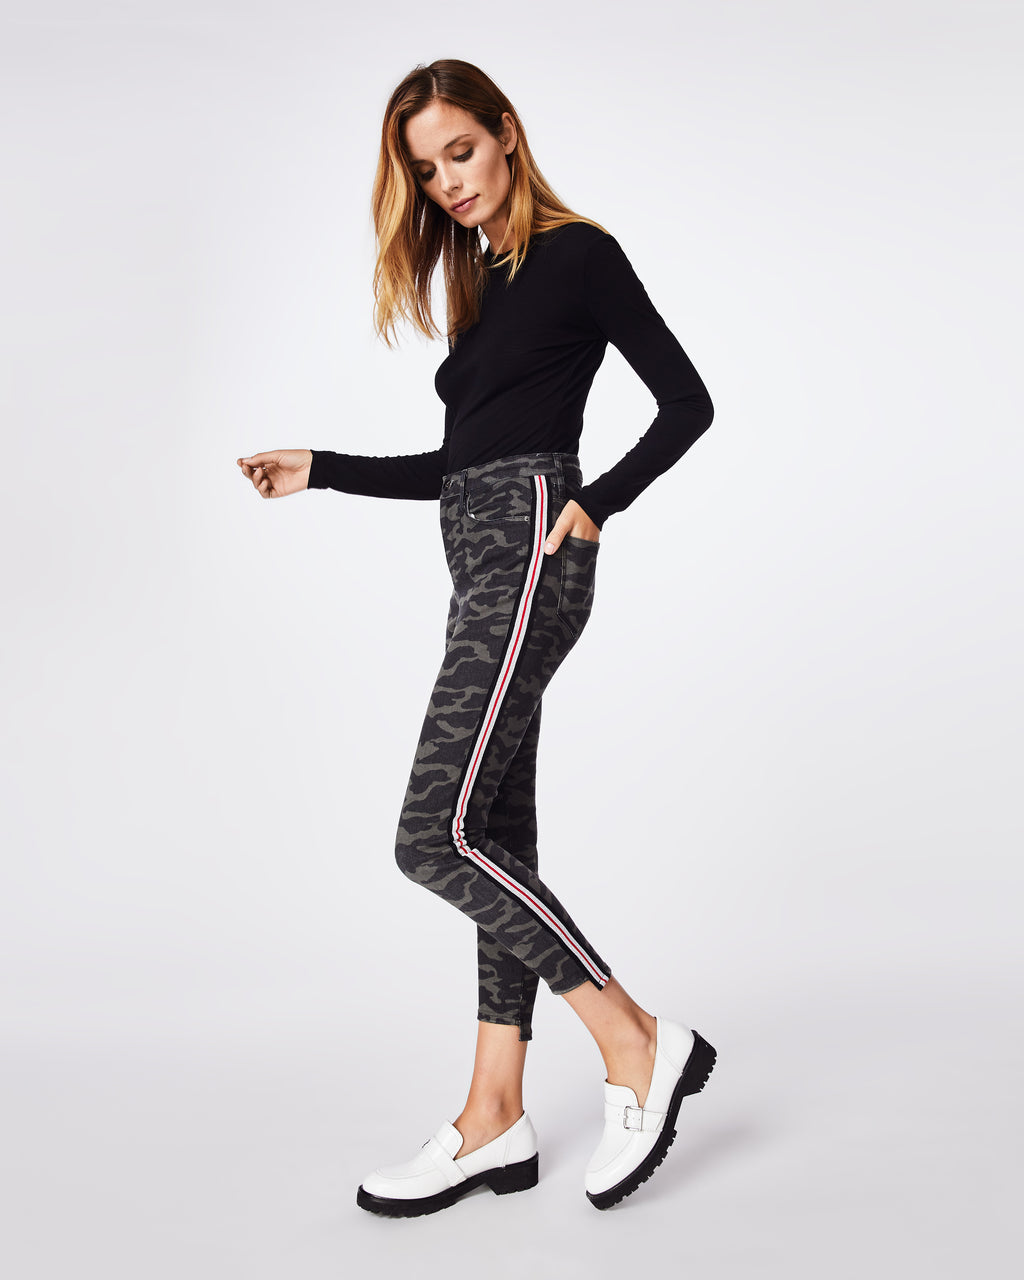 AS10191 - CAMO JEANS - bottoms - pants - CAMO MEETS STRIPE MEETS COOL. THESE MID-RISE PANTS FEATURE A RIBBED RACING STRIPE AND A SKINNY ANKLE FIT. ACCESSORIES? UNNECESSARY.